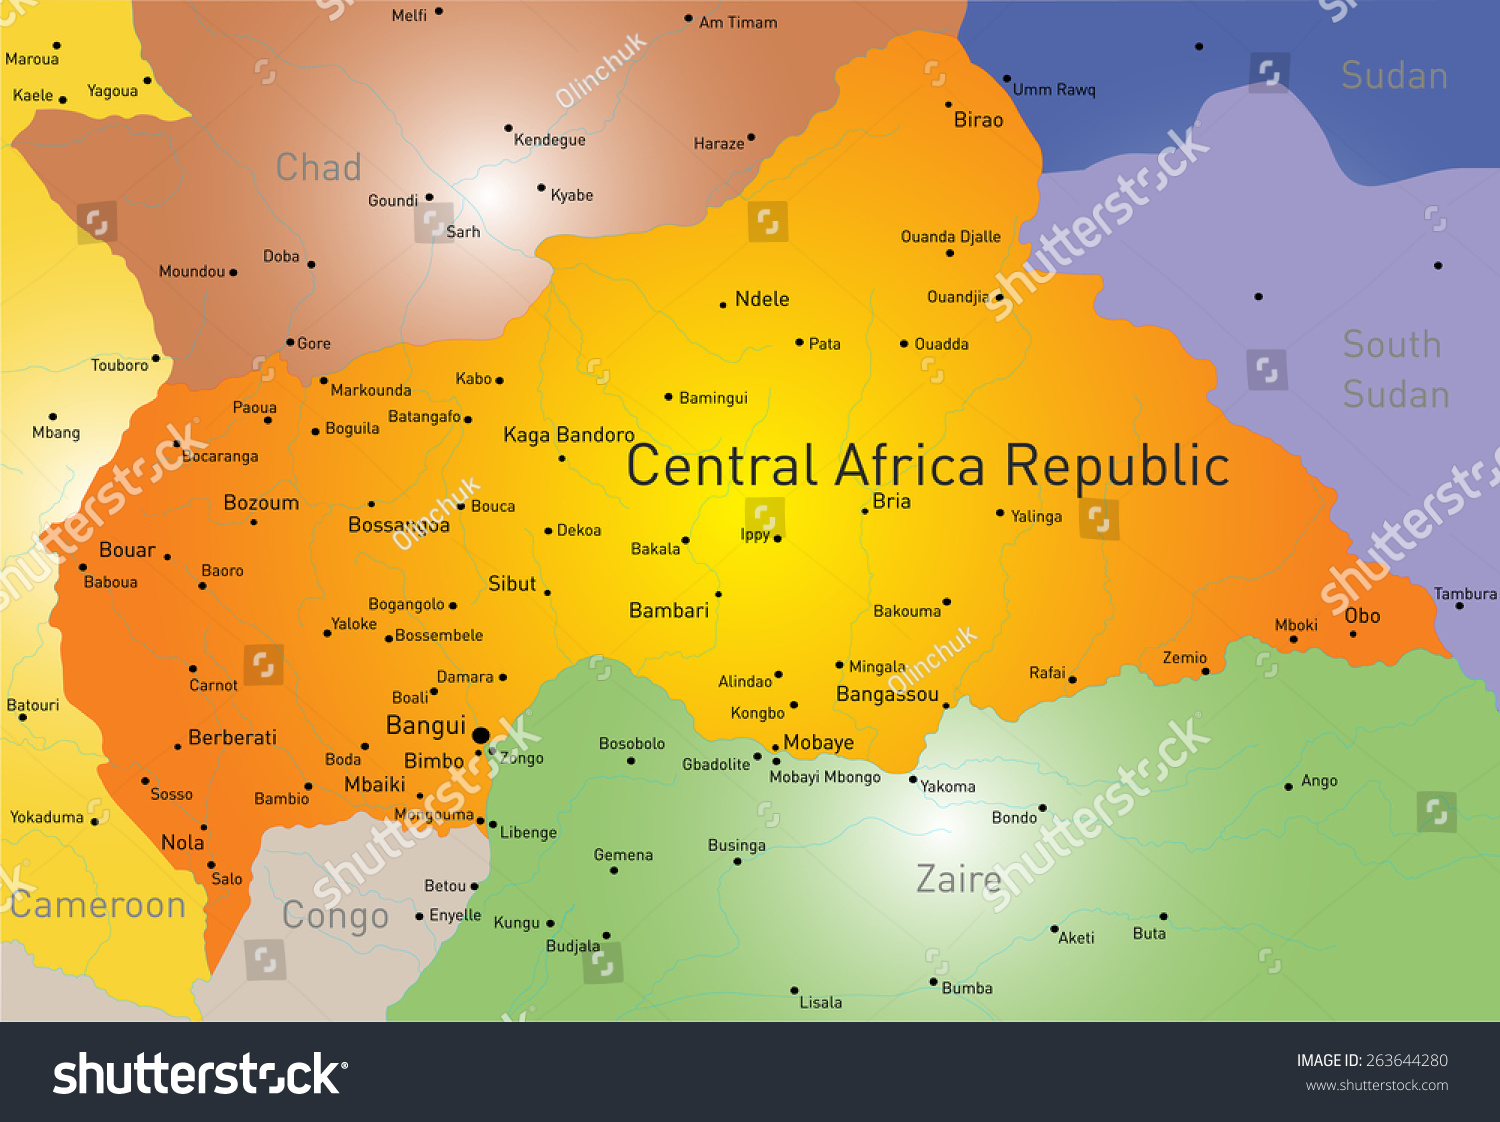 Map Of Central Africa In Different Colors African Countries Map - Central africa map